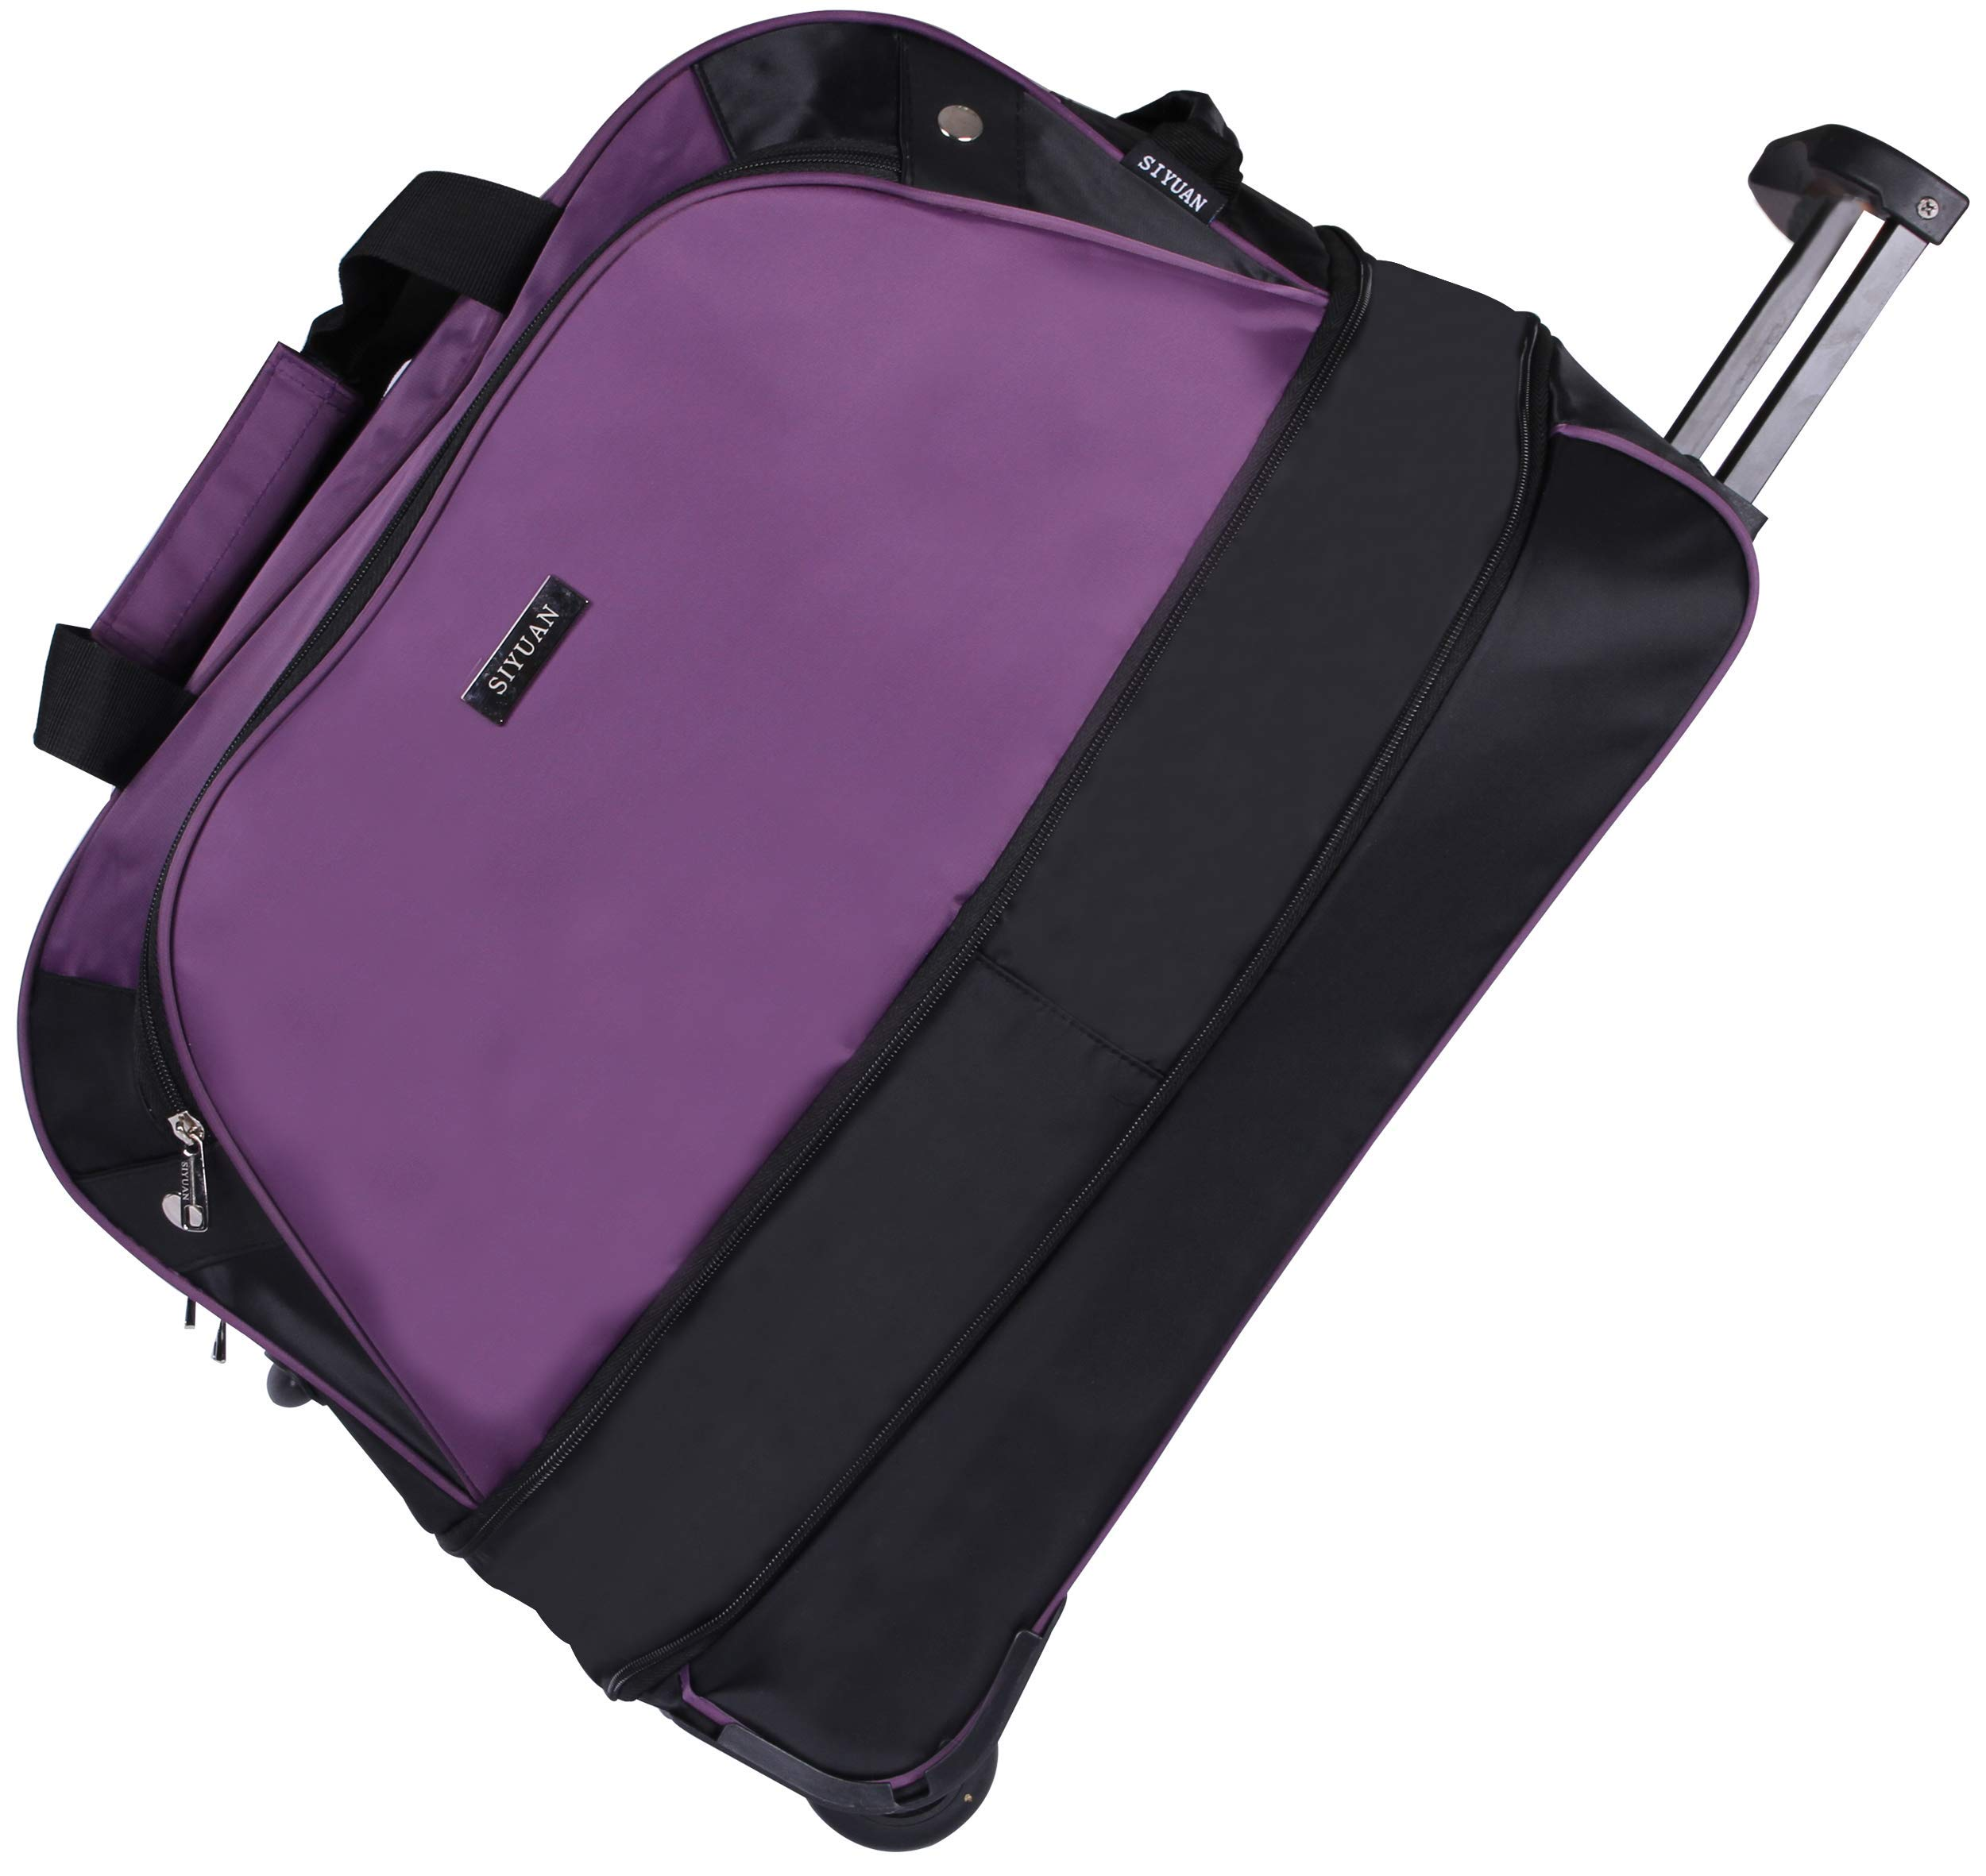 SIYUAN Duffel Bag with Wheels Women's Rolling Duffel Travel Airline Rolling Suitcase on Wheels Purple Medium 20 Inches